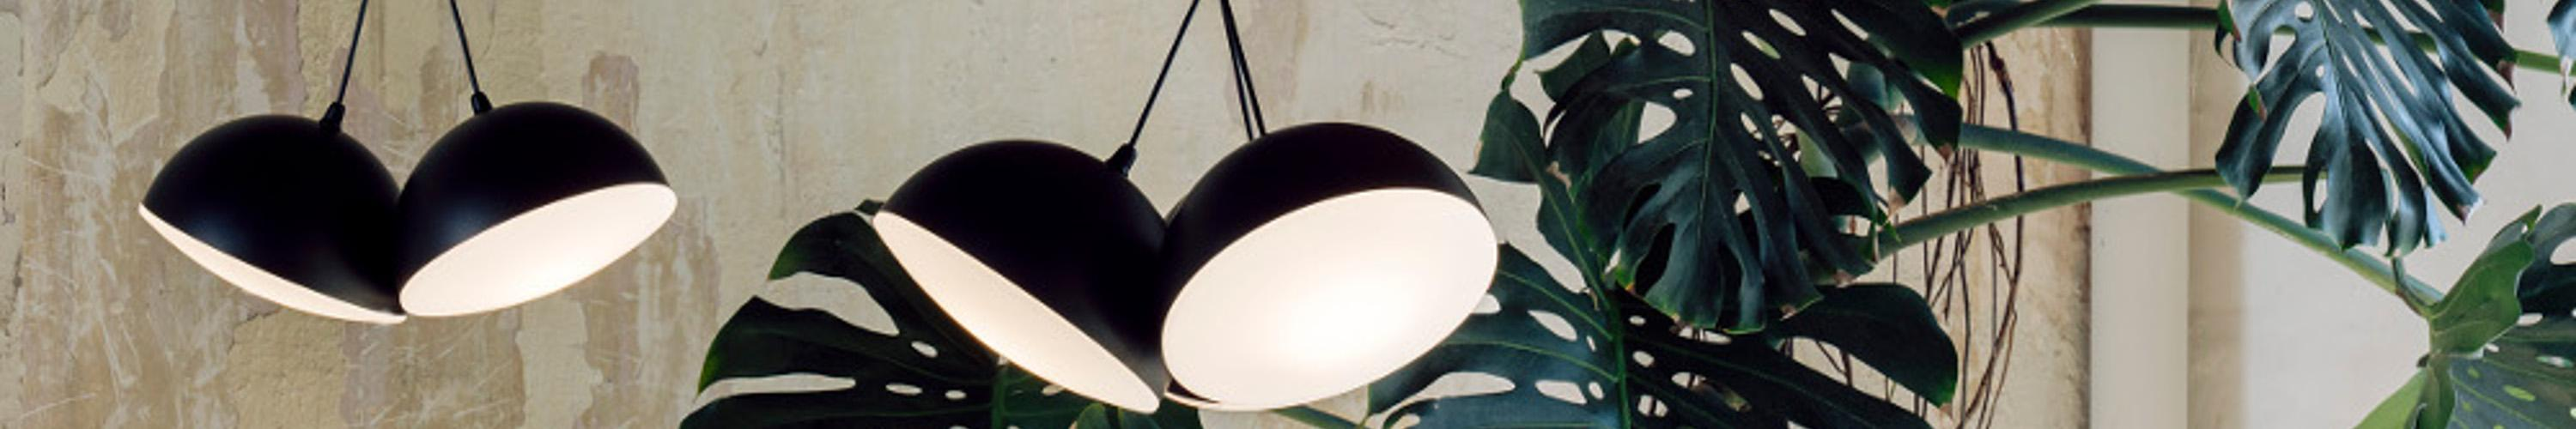 Hanging lamps with one, two or three lights with opal satin glass